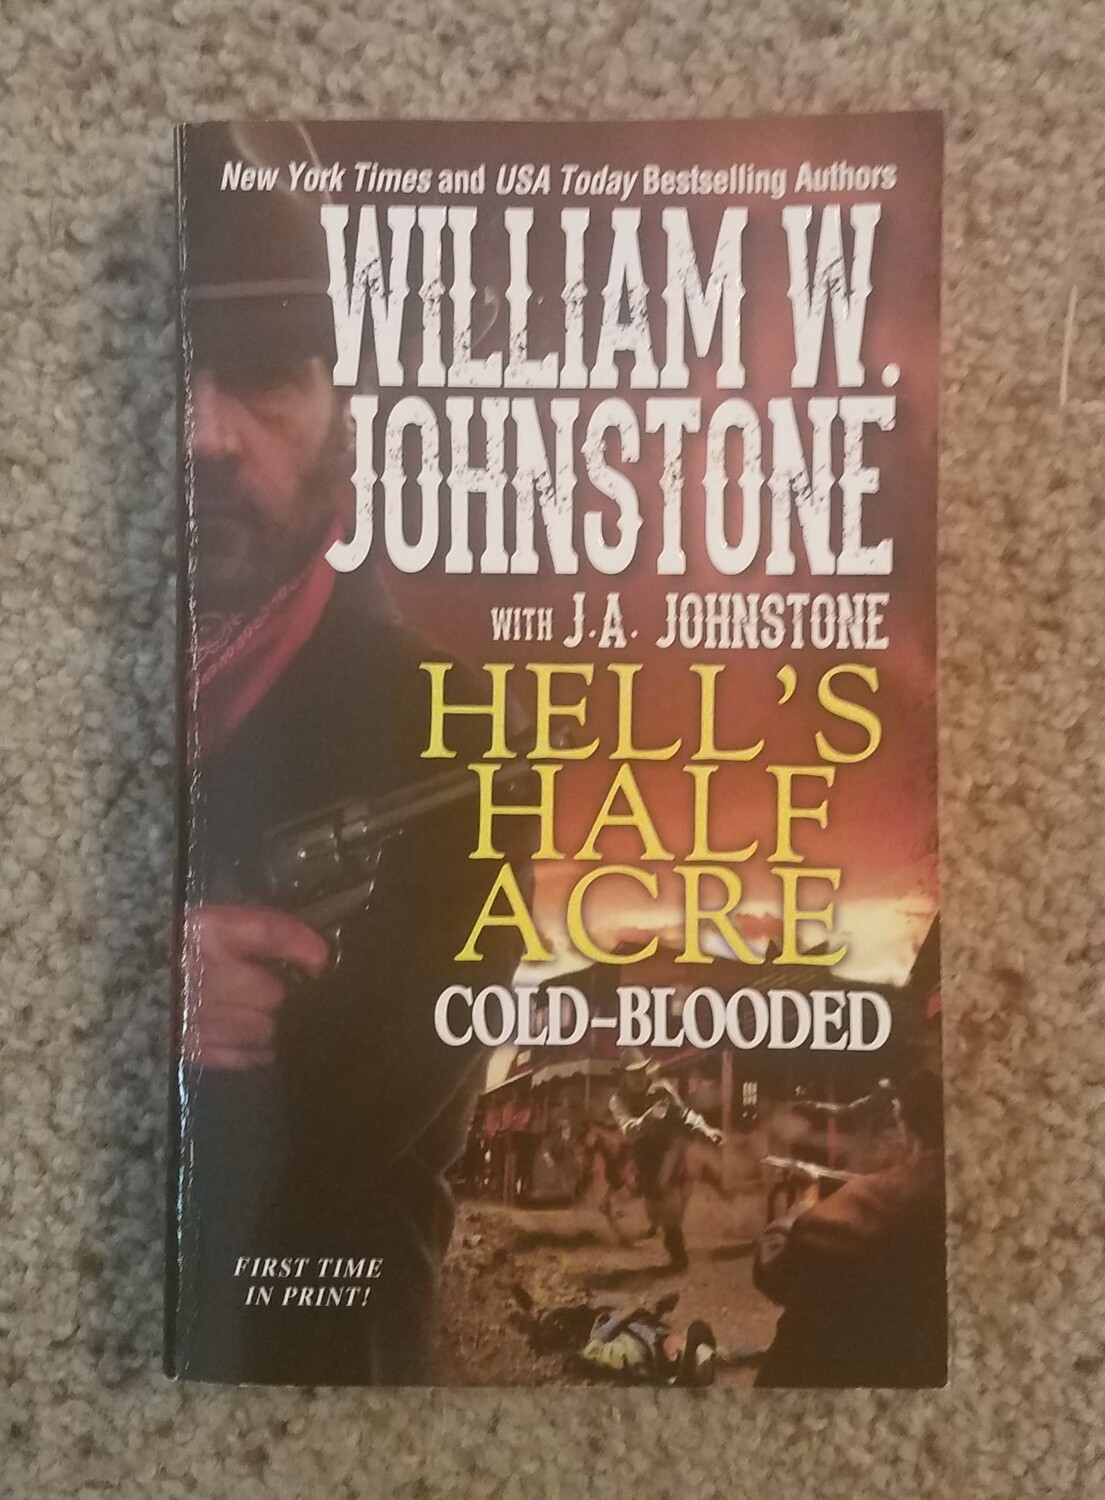 Hell's Half Acre: Cold-Blooded by William W. Johnstone with J.A. Johnstone